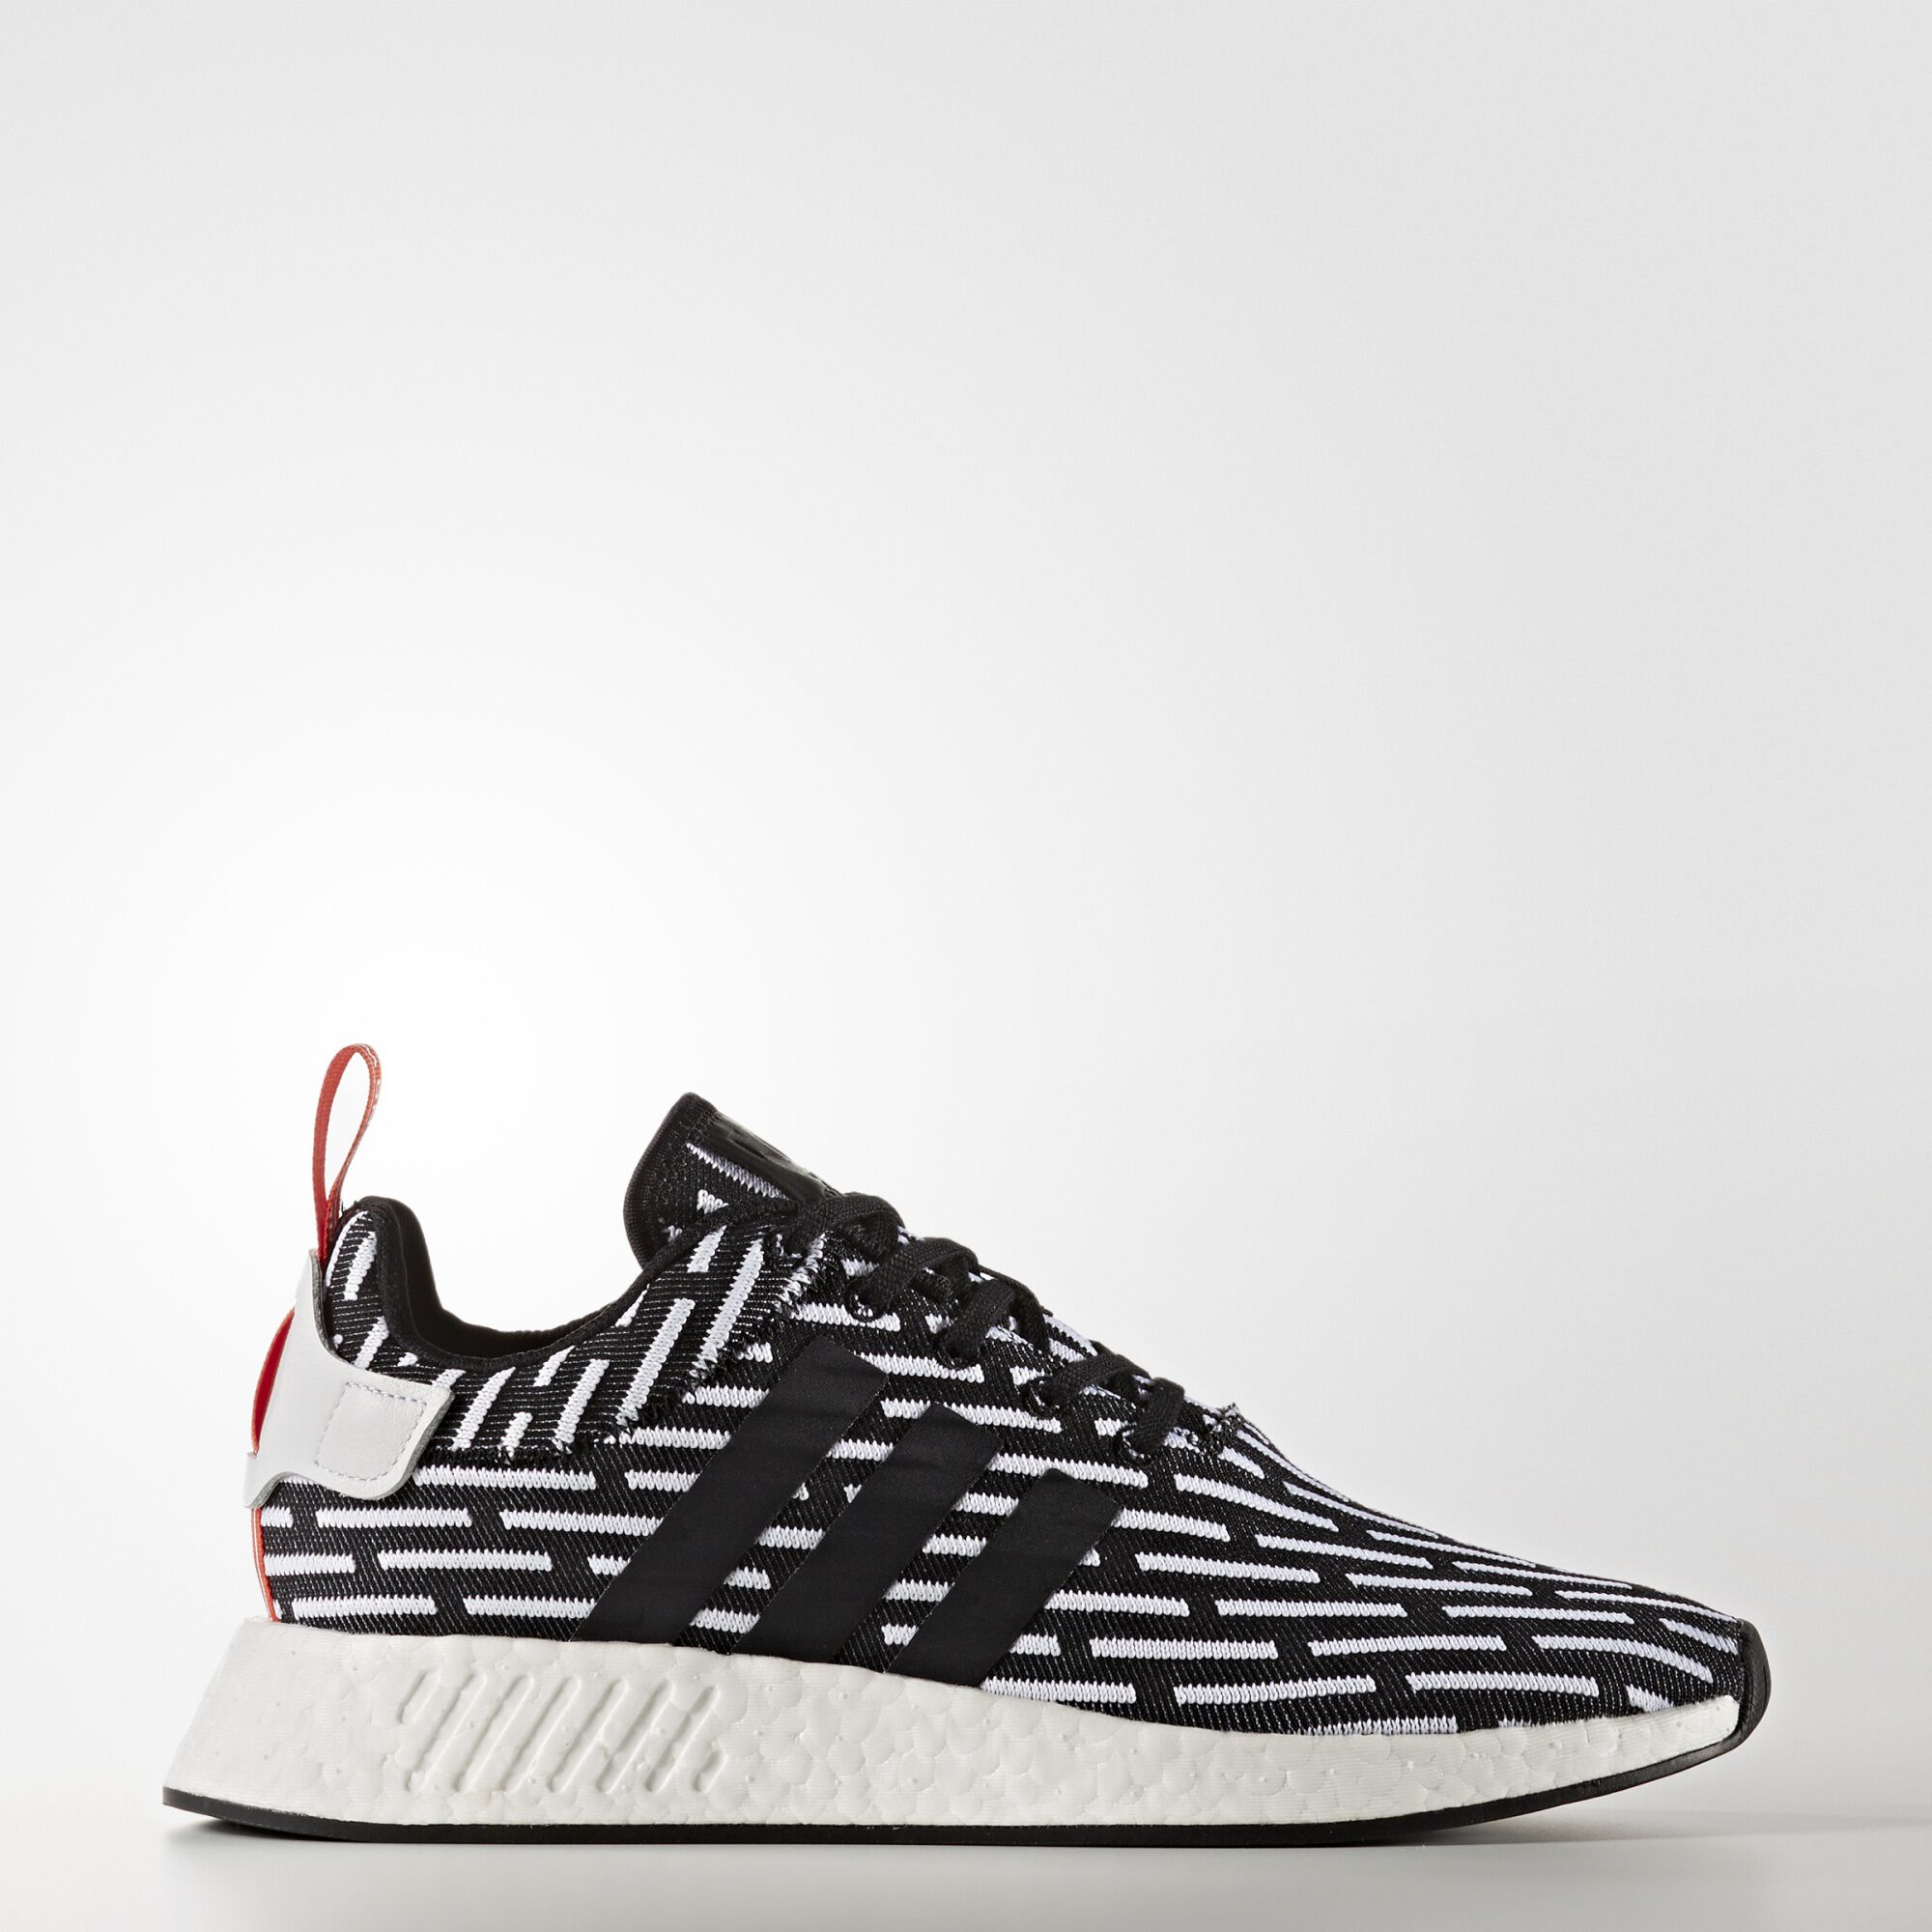 adidas NMD R2 Primeknit White Black BY3015